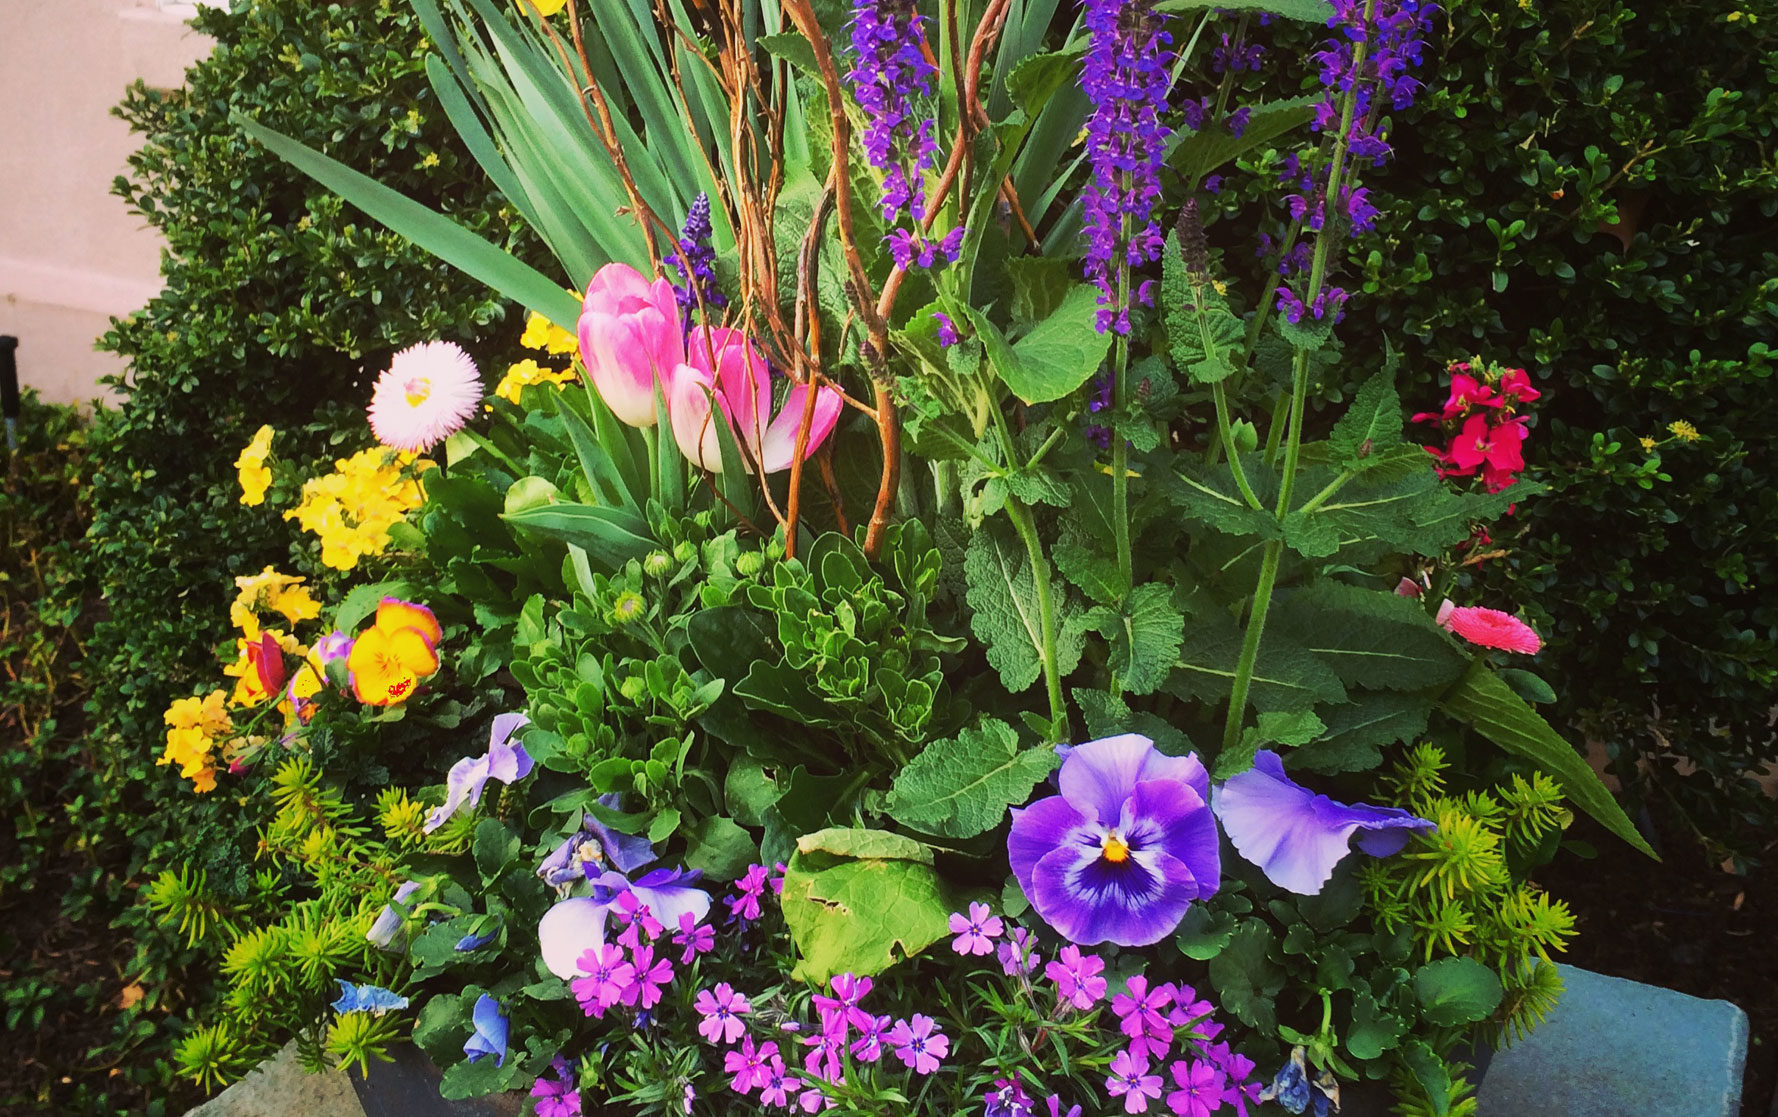 Spring Planter Arrangement with purple, pink, and yellow flowers